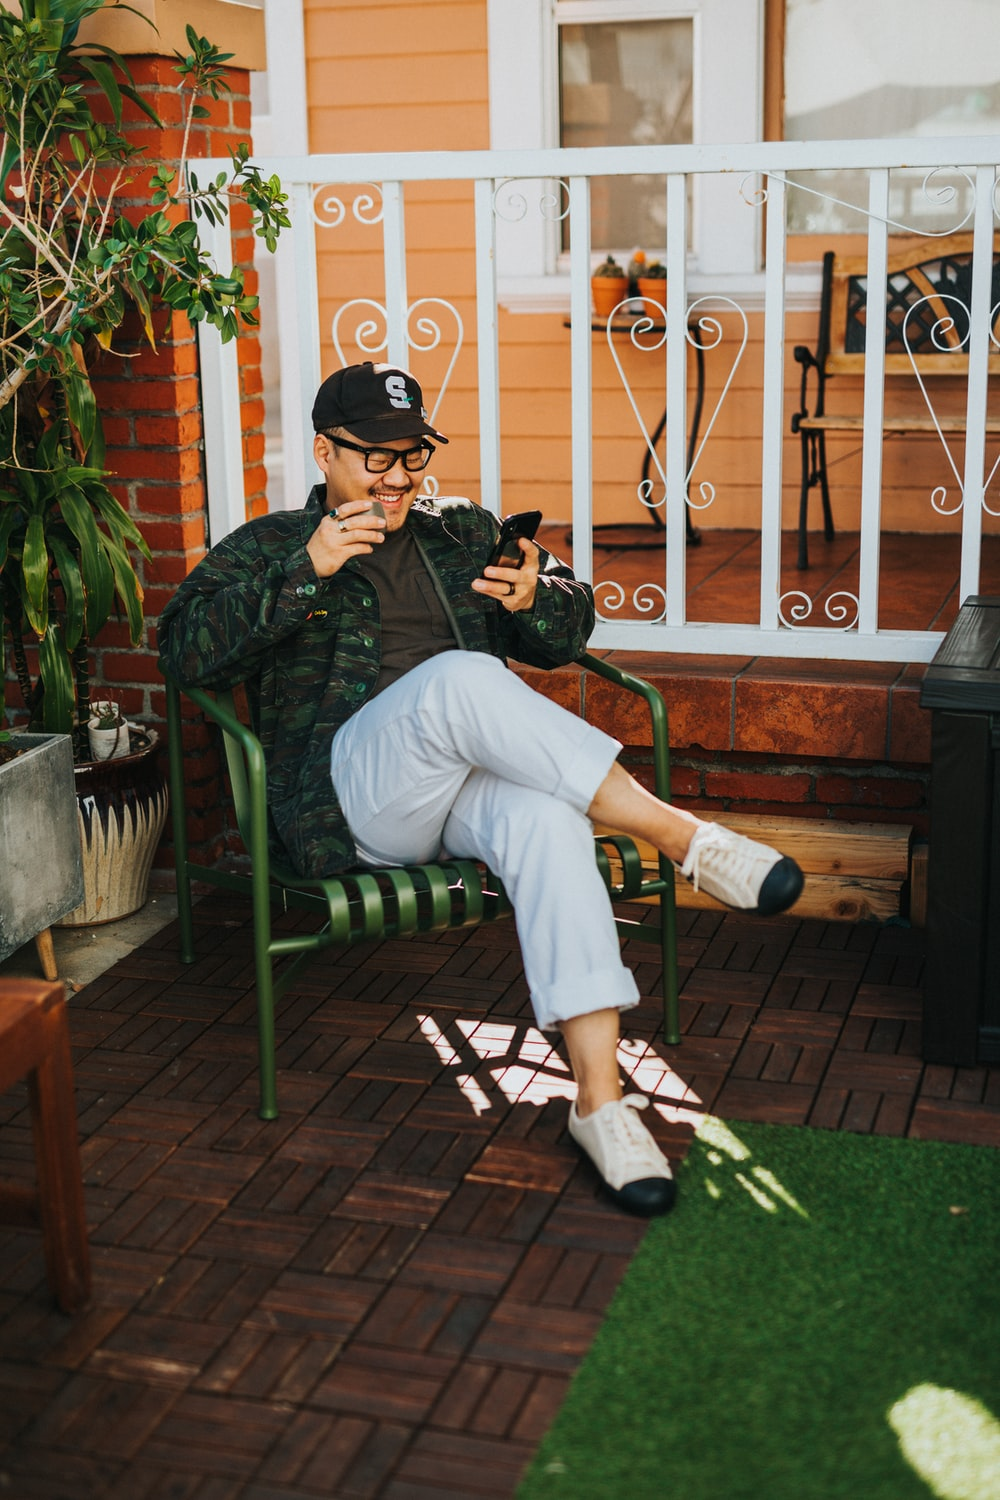 laughing man sitting on chair while using smartphone